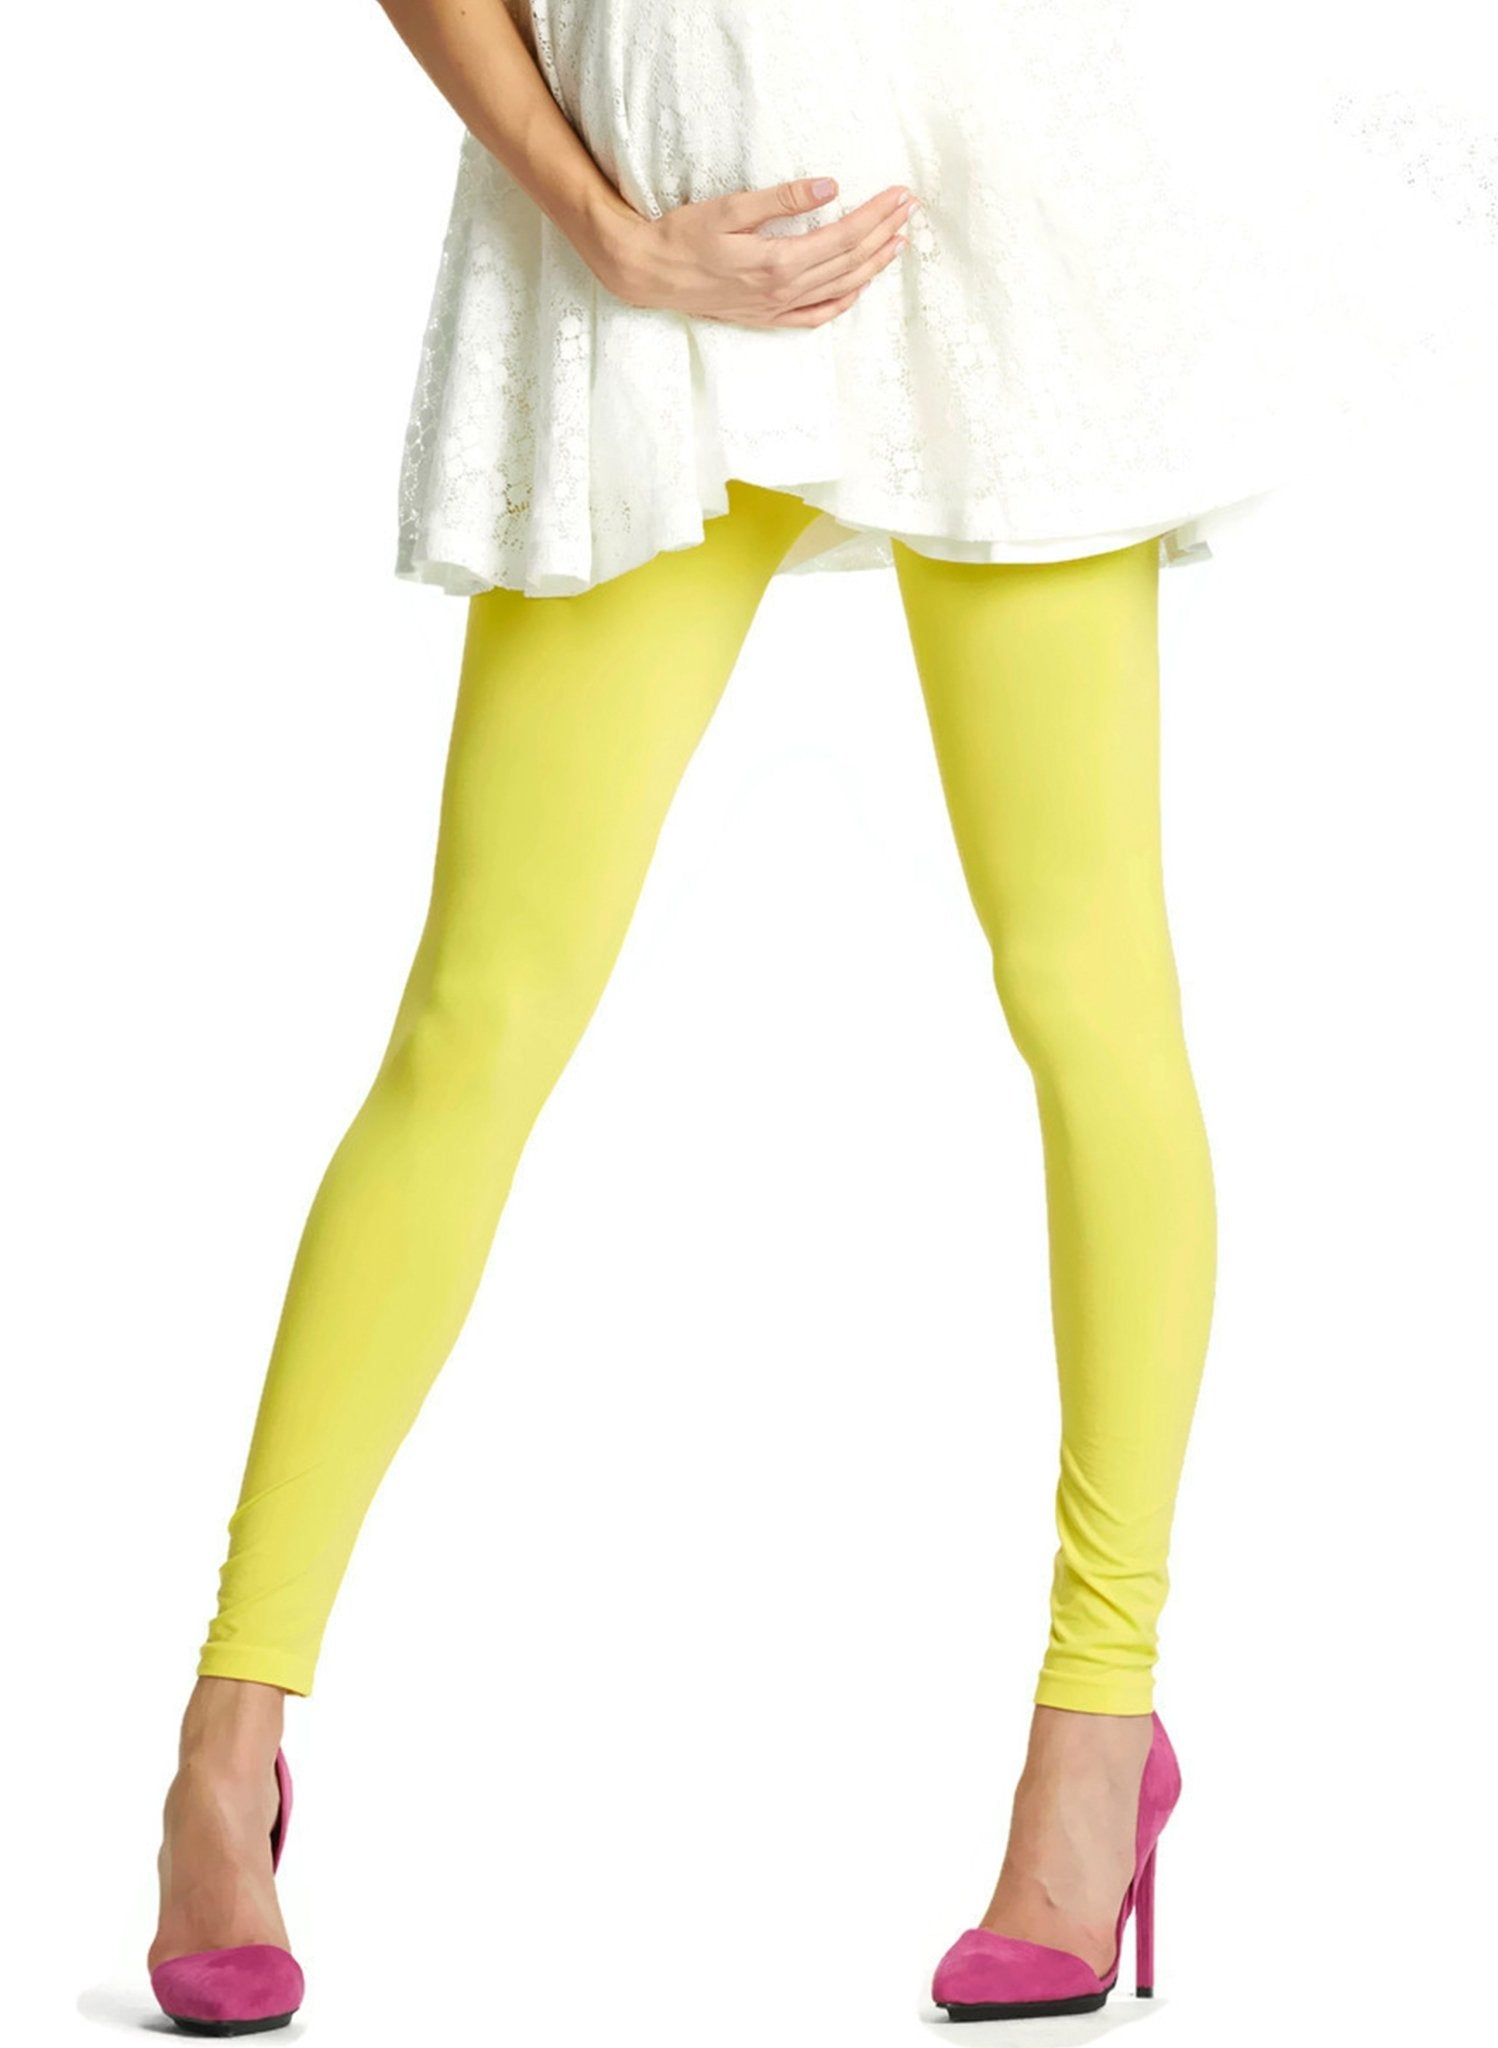 Color Me Sunshine Leggings - Mums and Bumps